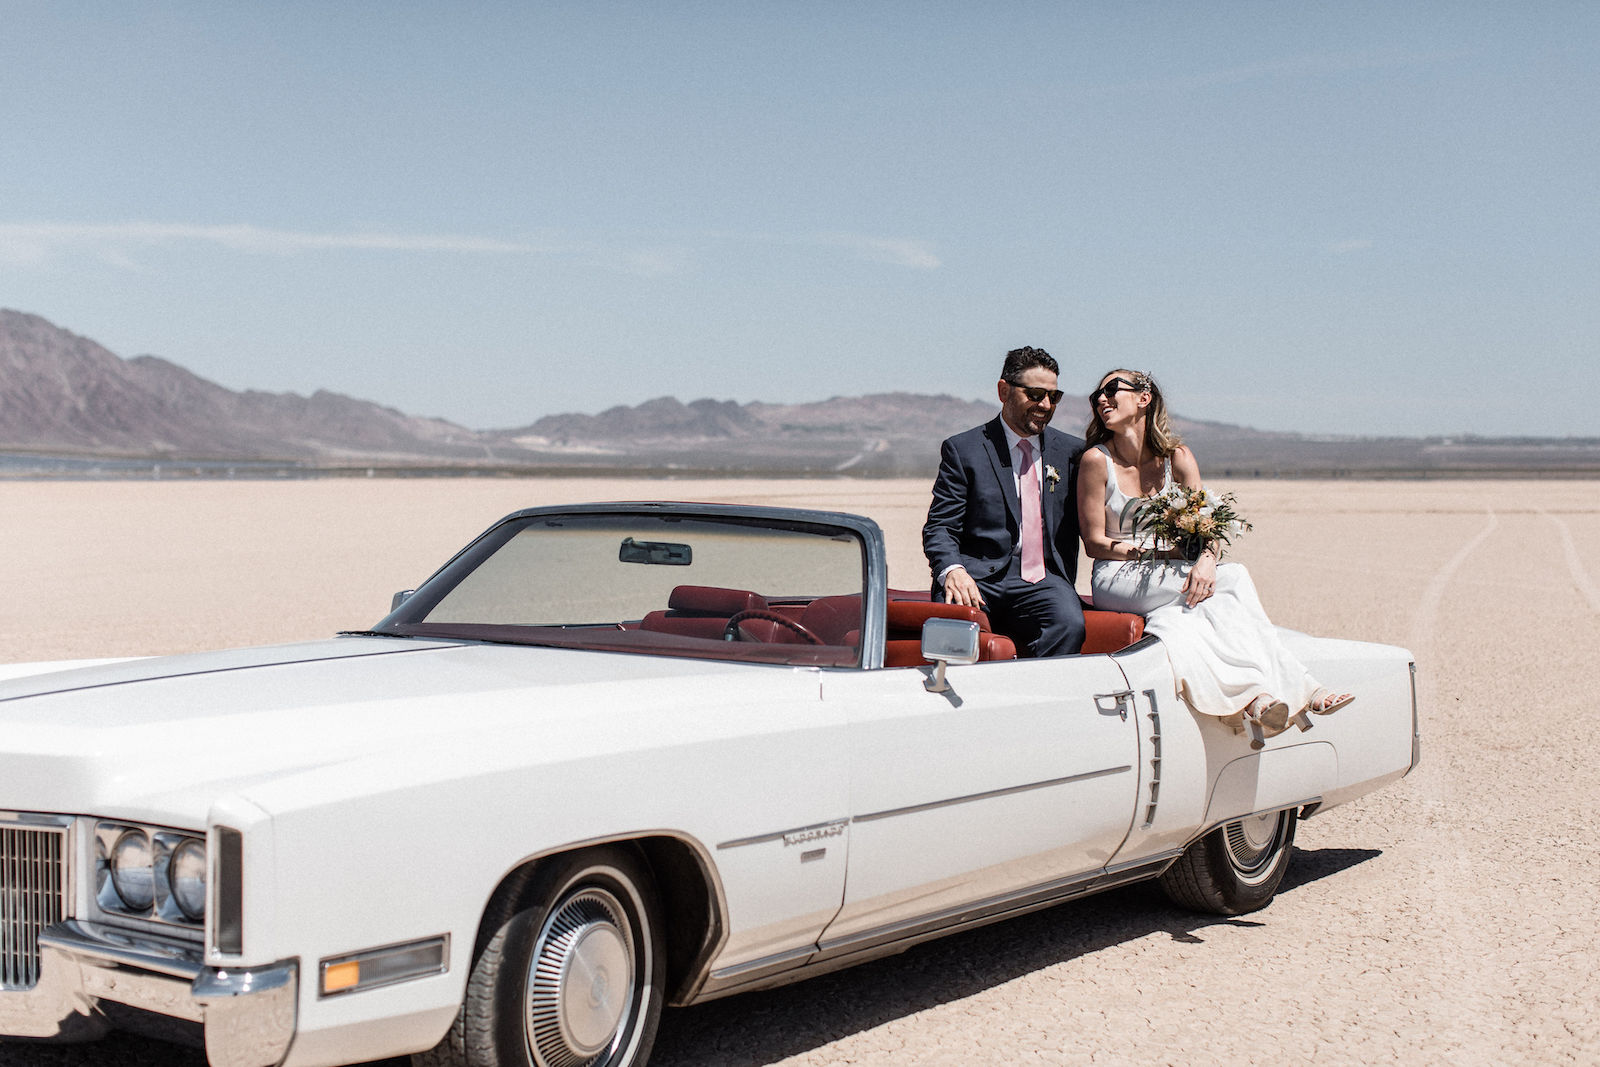 cadillac convertible dry lake bed elopement 00051.jpg